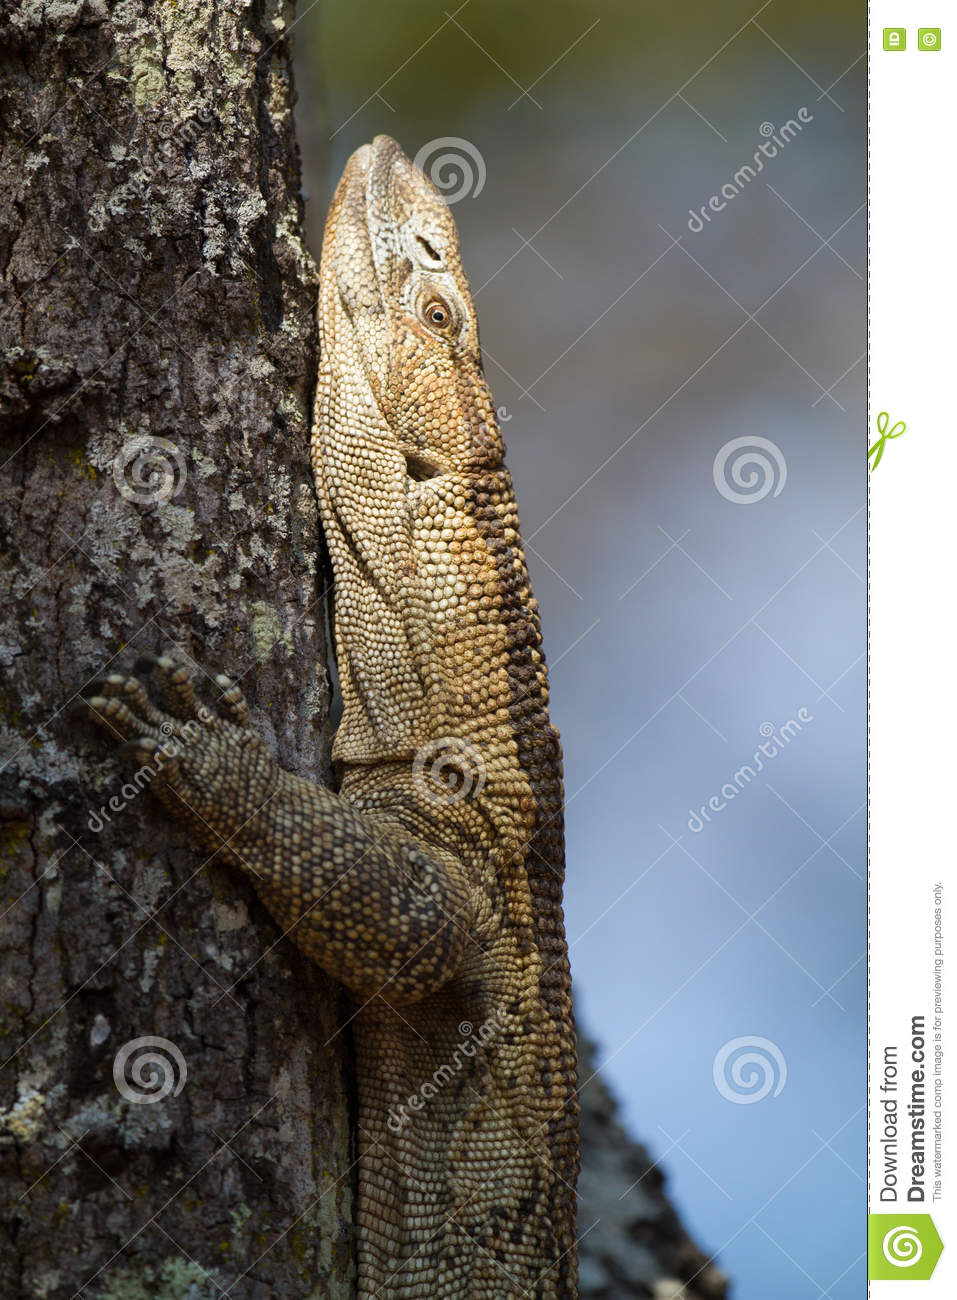 White Throated Monitor Lizard In Tree Stock Photo Image Of Forest